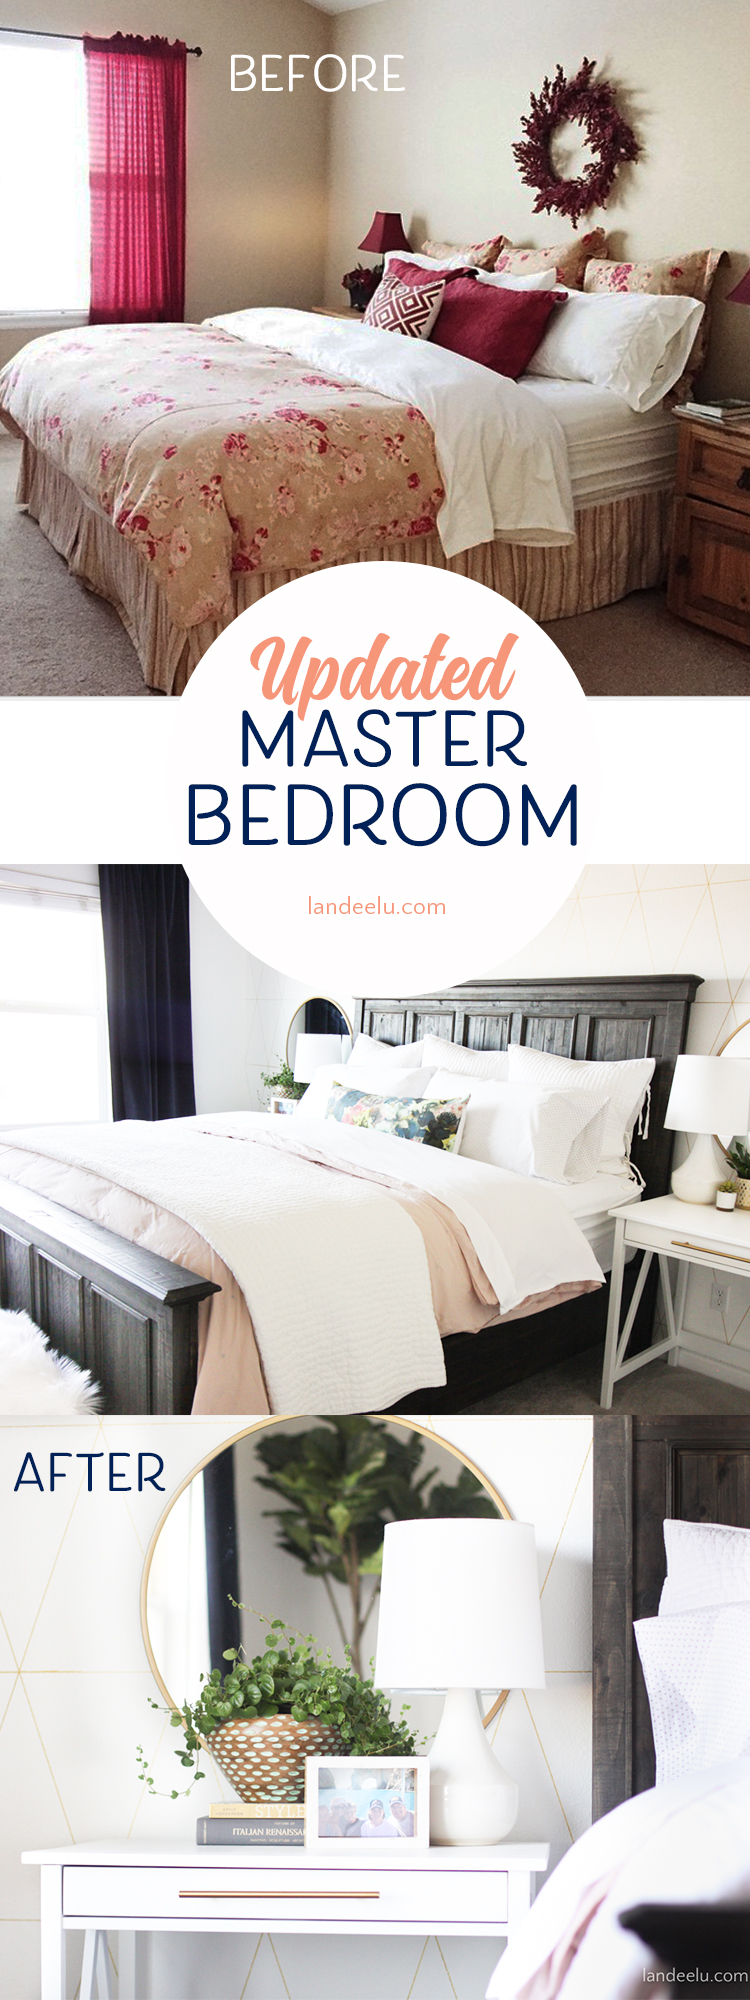 Love this transformation! Lots of awesome master bedroom ideas